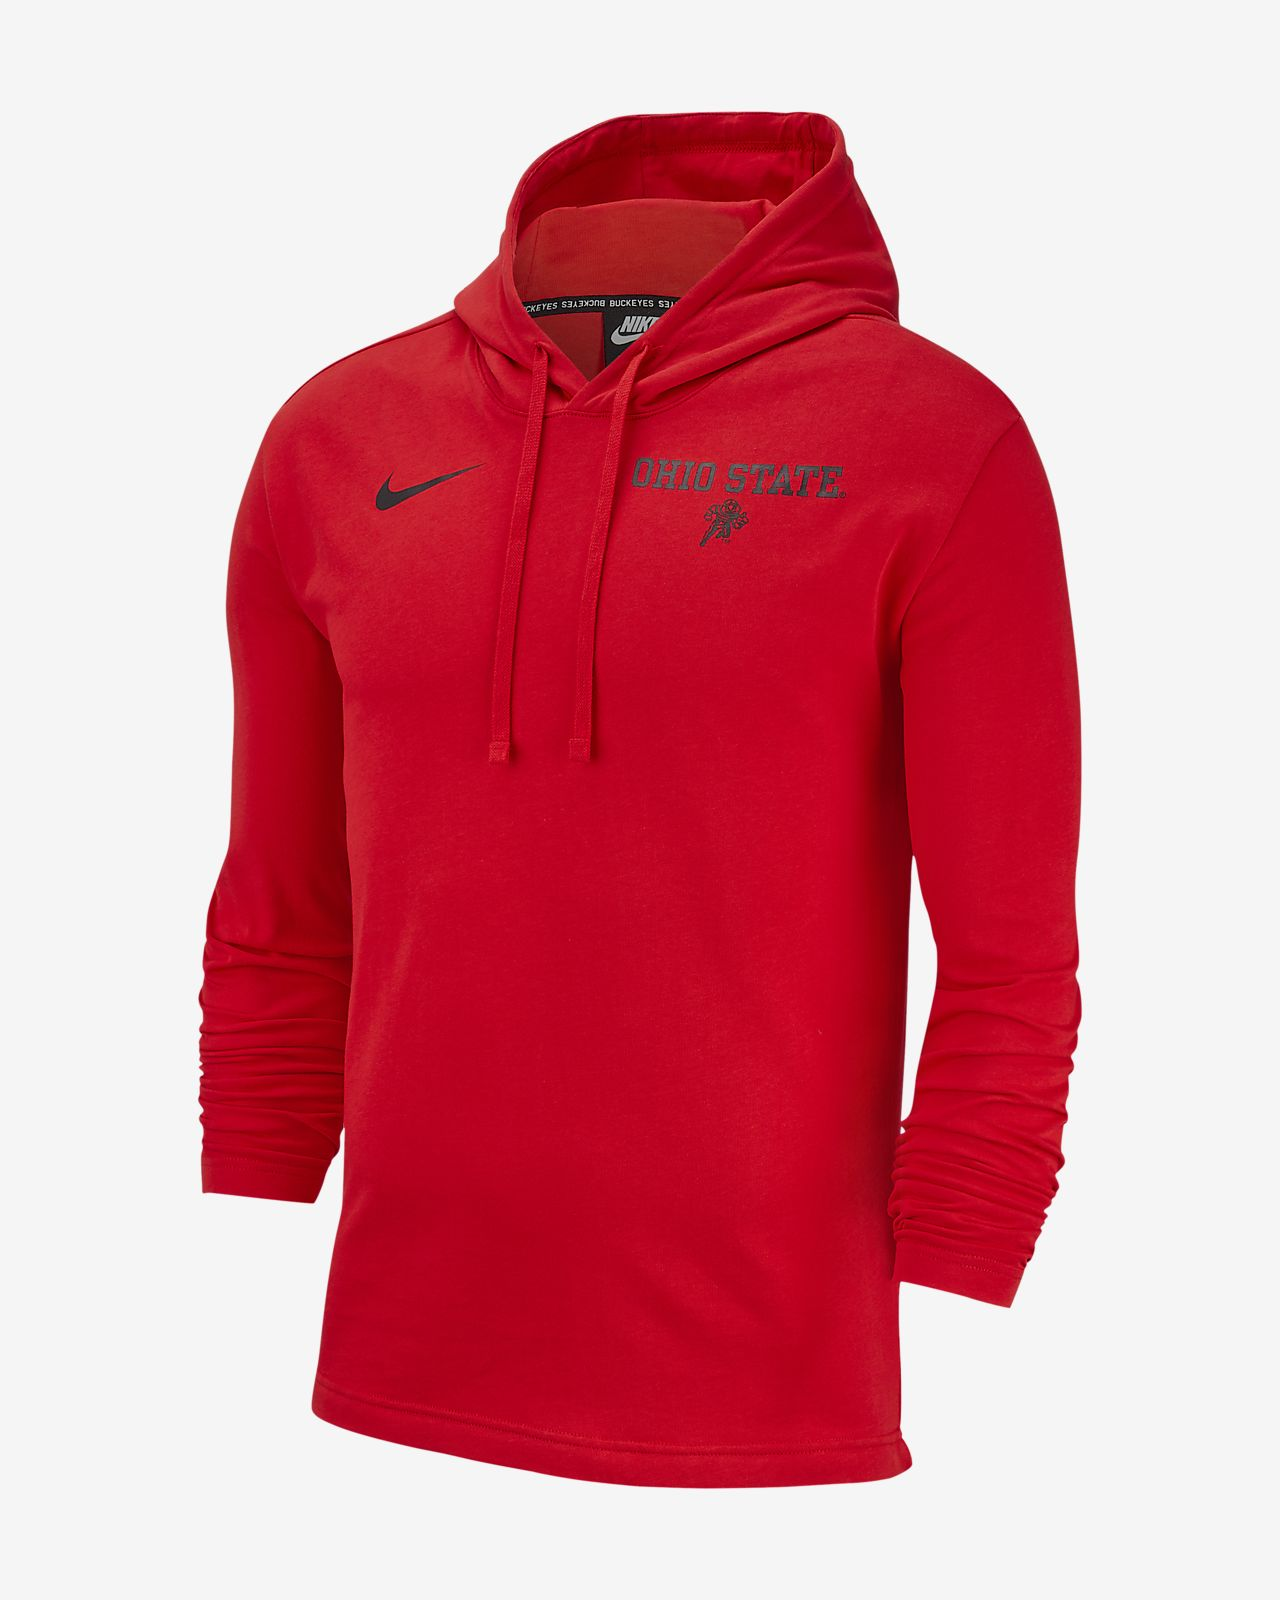 5b27f123d64 Nike College (Ohio State) Men's Pullover Hoodie. Nike.com